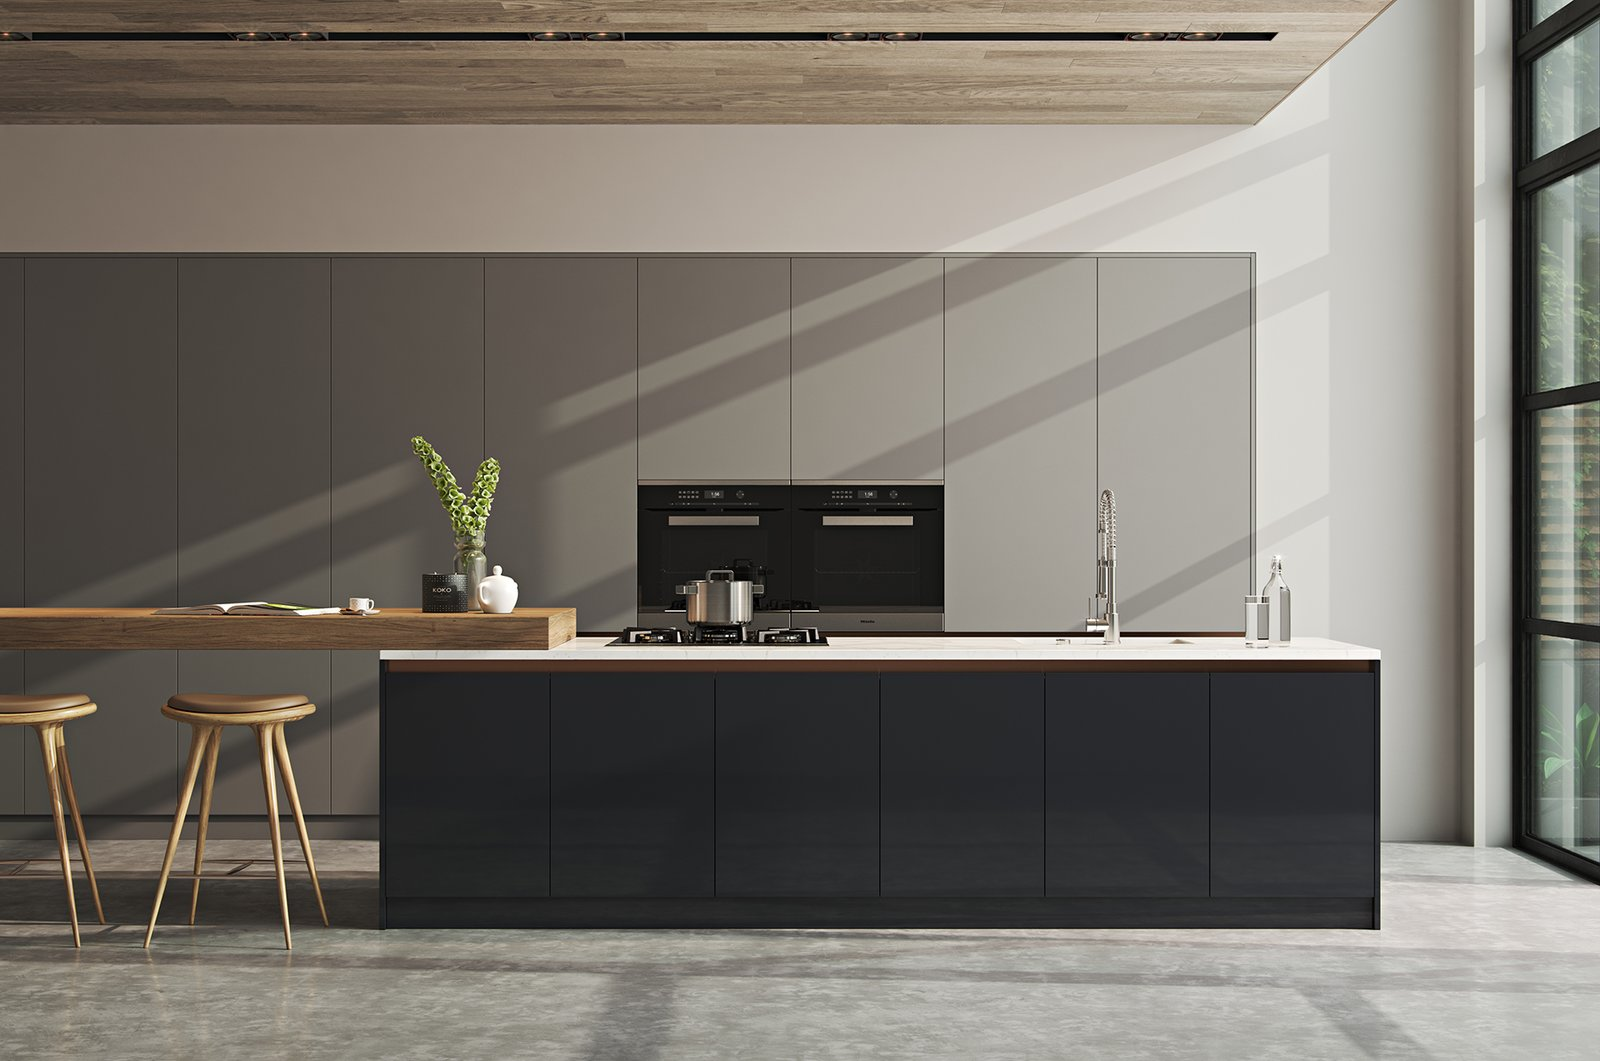 Kitchen, Marble Counter, Wood Counter, Concrete Floor, Recessed Lighting, Ceiling Lighting, Wall Oven, Undermount Sink, Laminate Cabinet, and Cooktops  Kitchen//Extension by Mitaka DImov